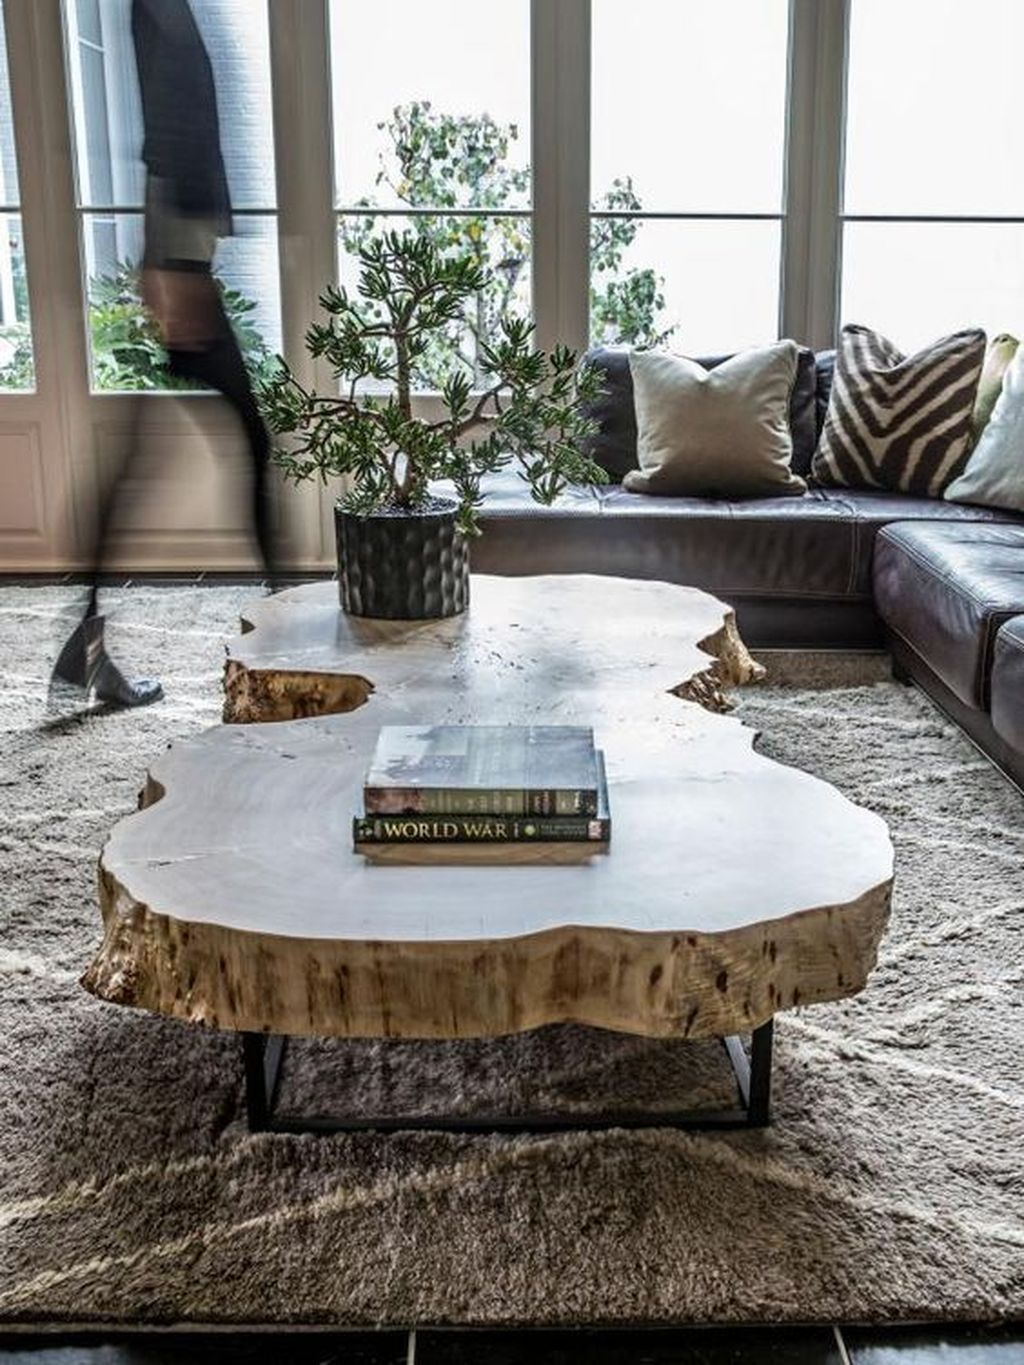 42 Awesome Wooden Coffee Table Design Ideas Homyhomee Wooden Coffee Table Designs Coffee Table Design Coffee Table Farmhouse [ 1365 x 1024 Pixel ]